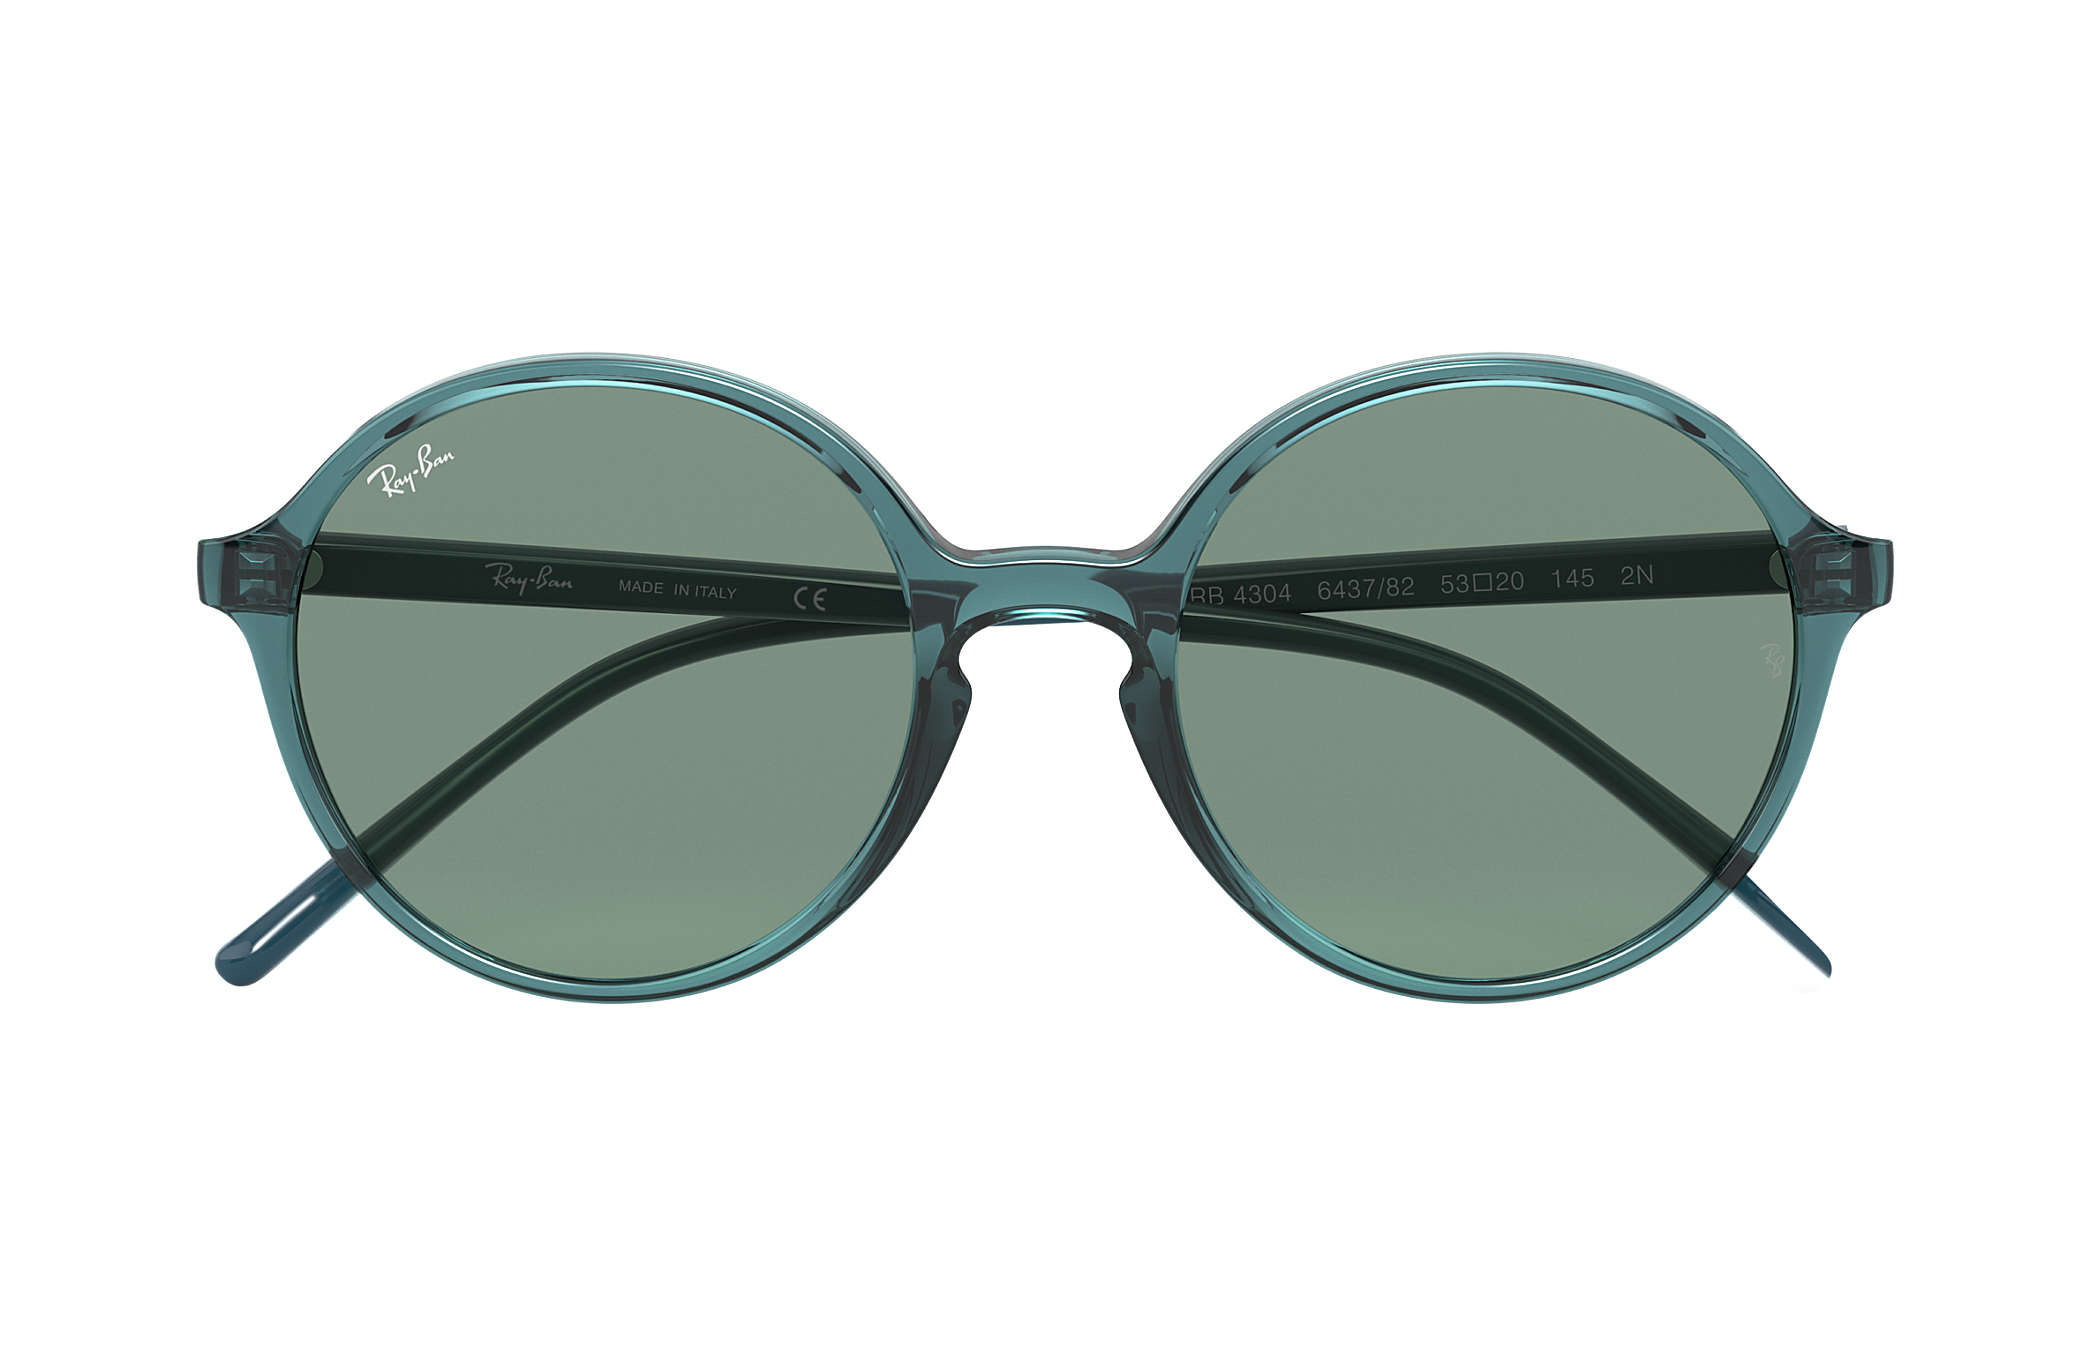 310c919e311158 Ray-Ban RB4304 Transparent Turquoise - Nylon - Green Brillenglazen ...